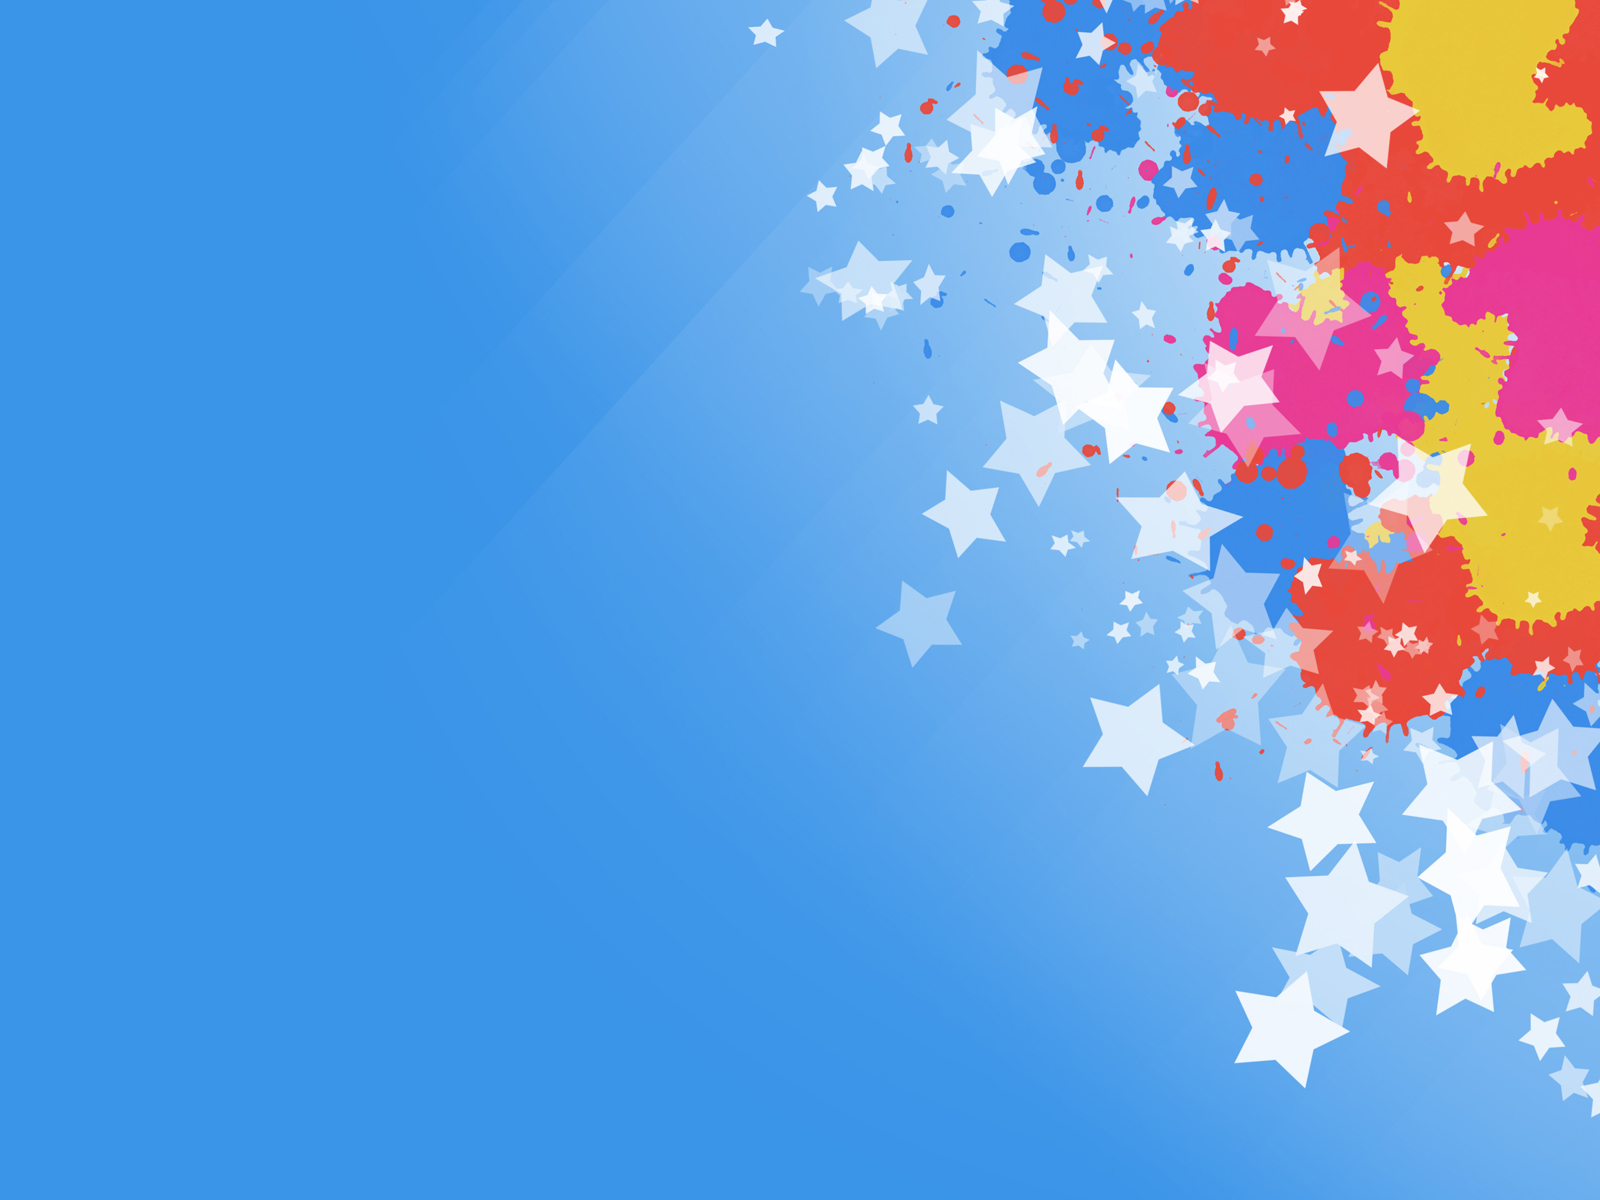 Celebration Borders or Backgrounds Download HD Wallpapers 1600x1200